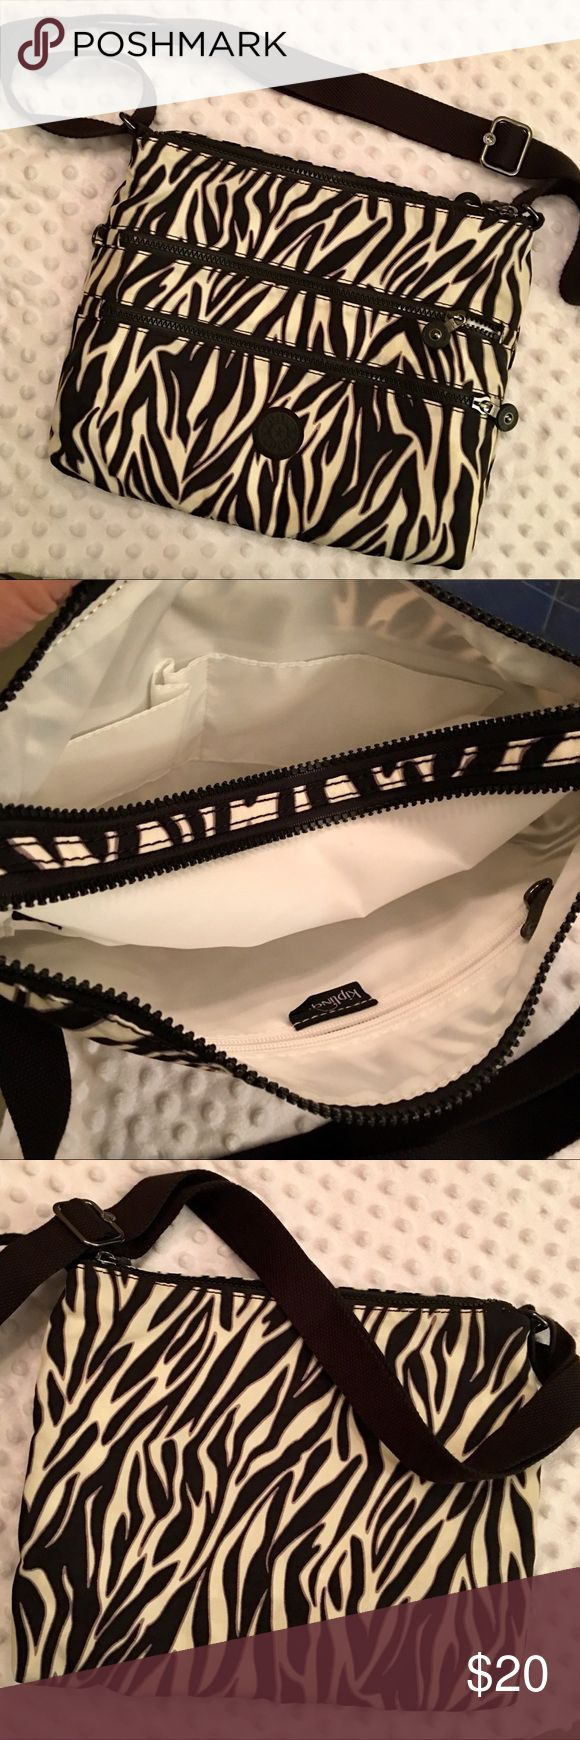 """KIPLING Alvar Crossbody Messenger Handbag 👜! NWOT! KIPLING Alvar Crossbody Messenger Bag! Used only once, & it's in like-new condition. 5 total zippered pockets - 2 in front 2 on top, 1 inside, I purchased this NEW from Amazon, but didn't like the pattern. Missed the return window. This Crossbody is the PERFECT size. I have a number of them in different colors/patterns.  Drop Length 24"""" Adjustable Shoulder Strap Missing monkey keychain. Kipling Bags Crossbody Bags"""